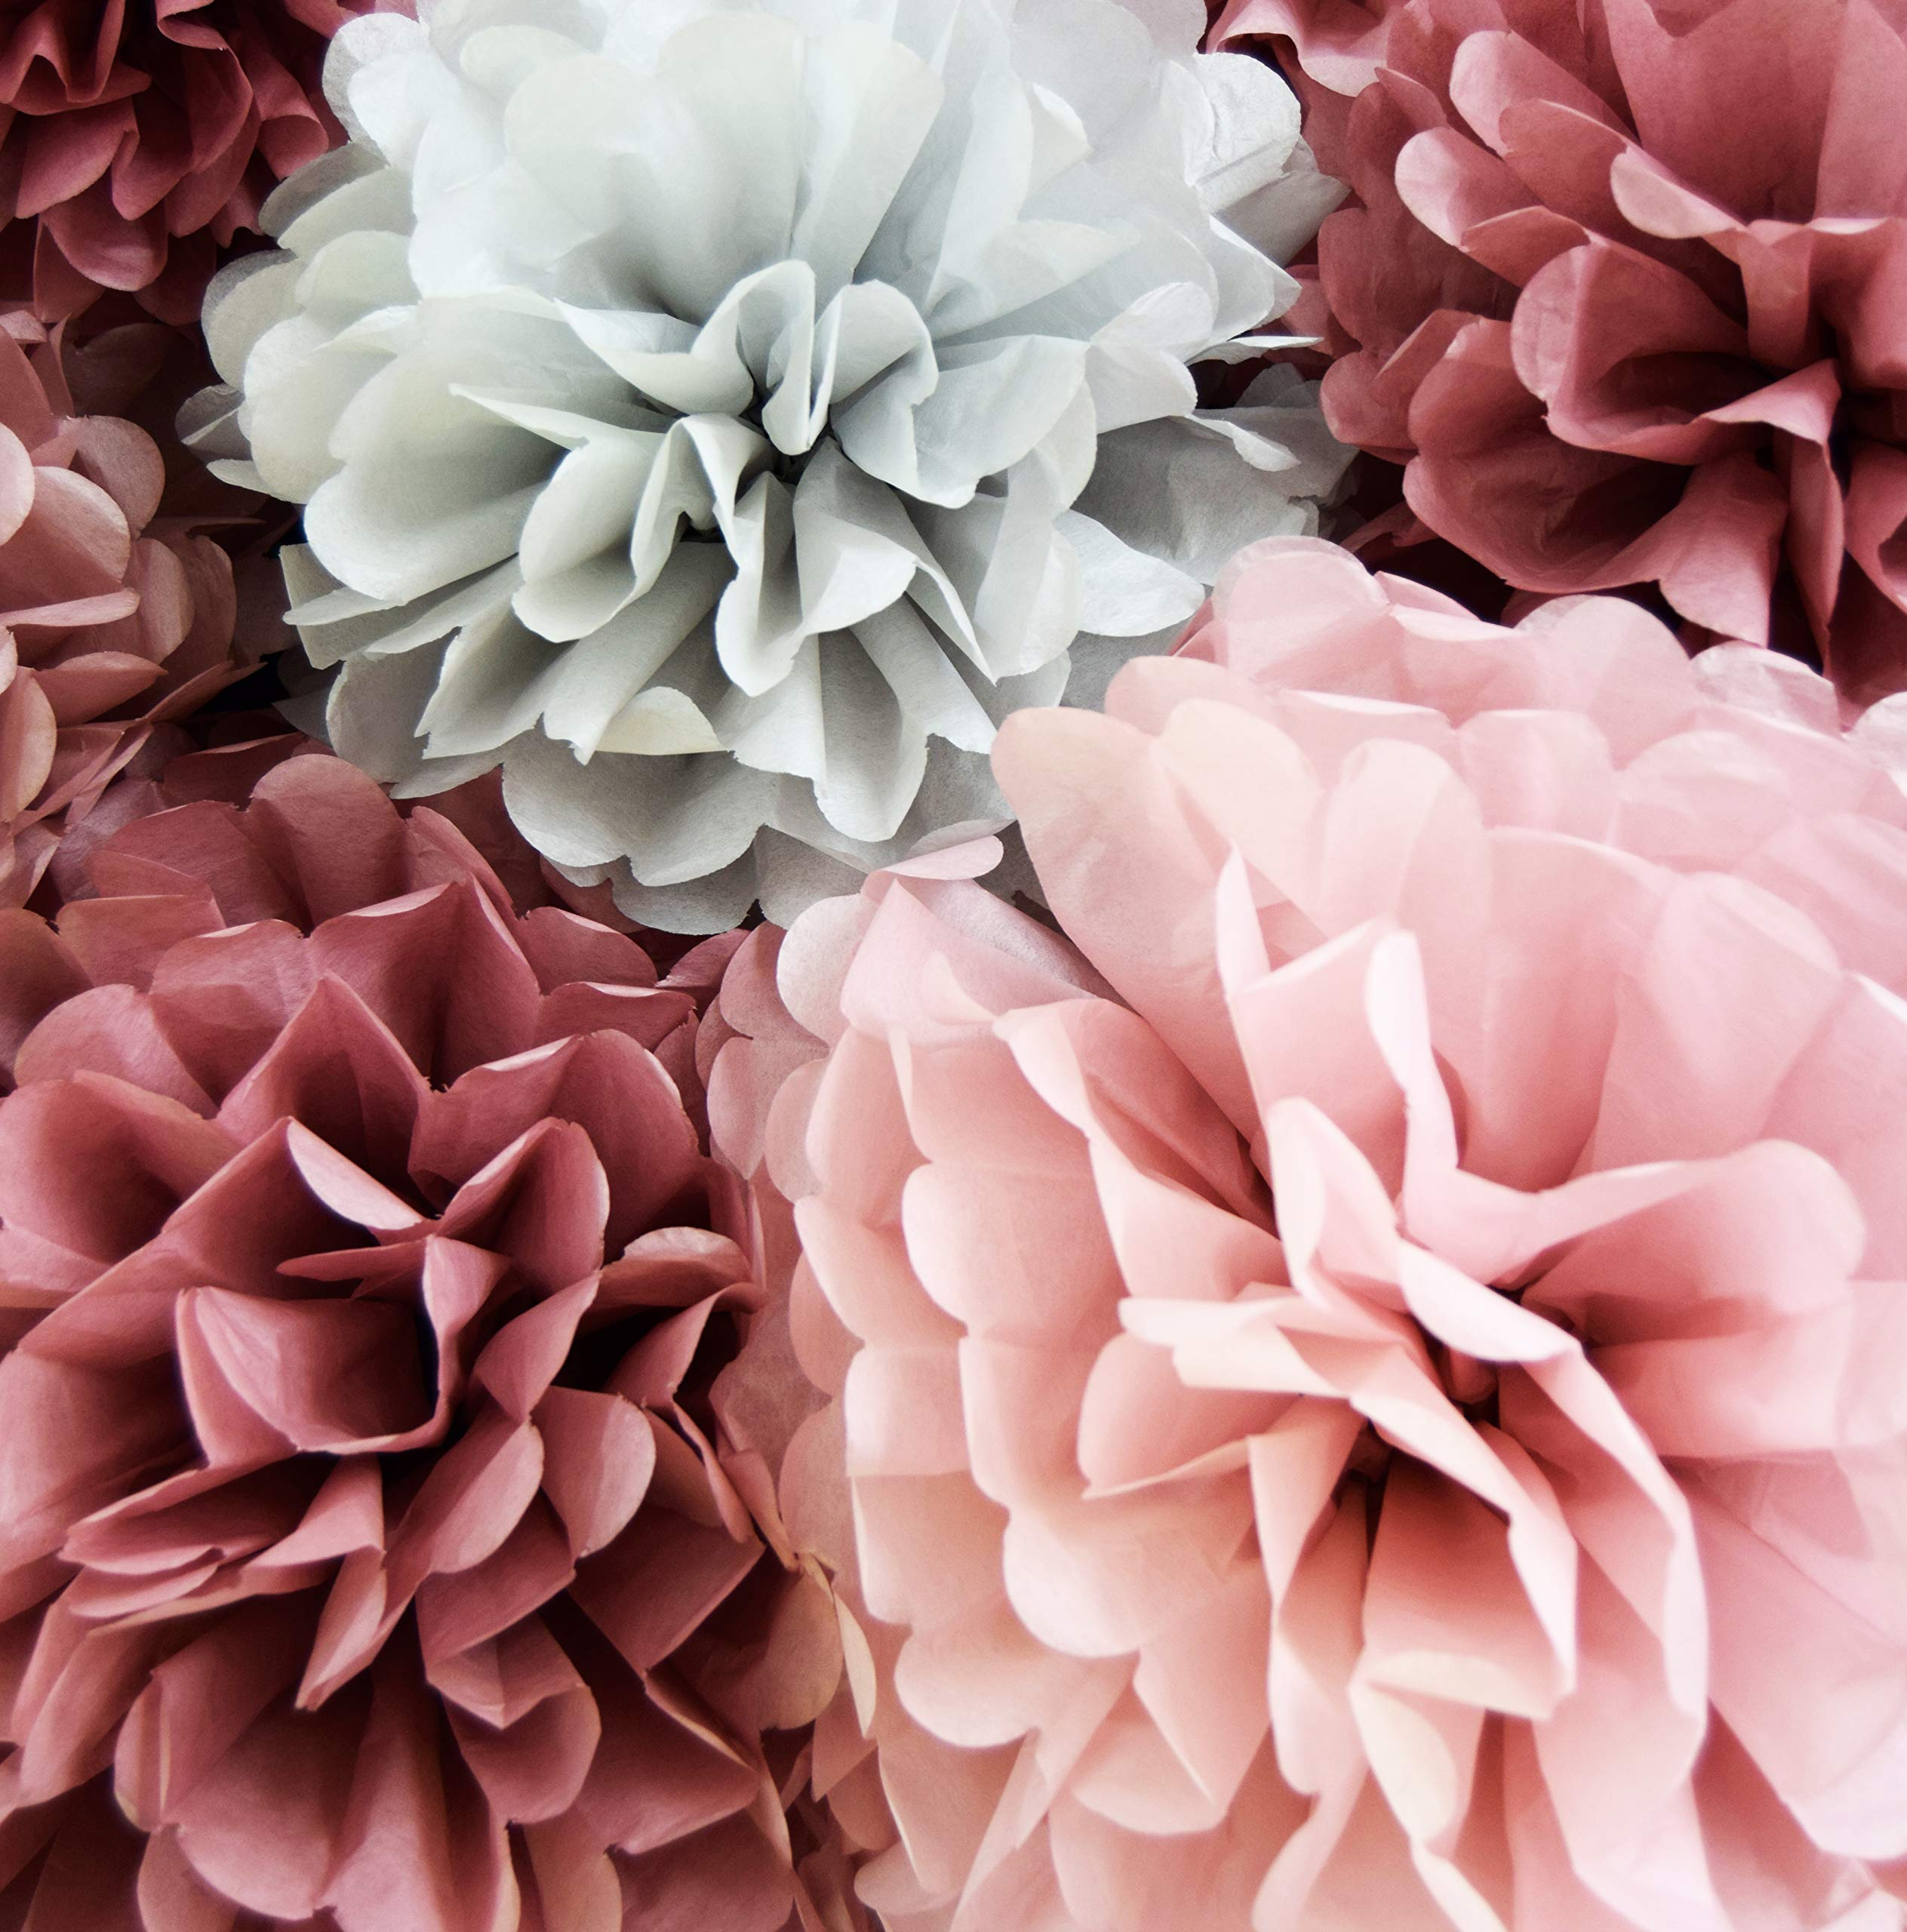 VINANT 20 PCS Tissue Paper Pom Poms - Paper Flower - Party Decoration for Birthday Party - Baby Shower - Bridal Shower - Wedding - Bachelorette - Dusty Rose, Mauve, Blush Pink, Grey - 14'', 10'', 8'', 6'' by VINANT (Image #4)